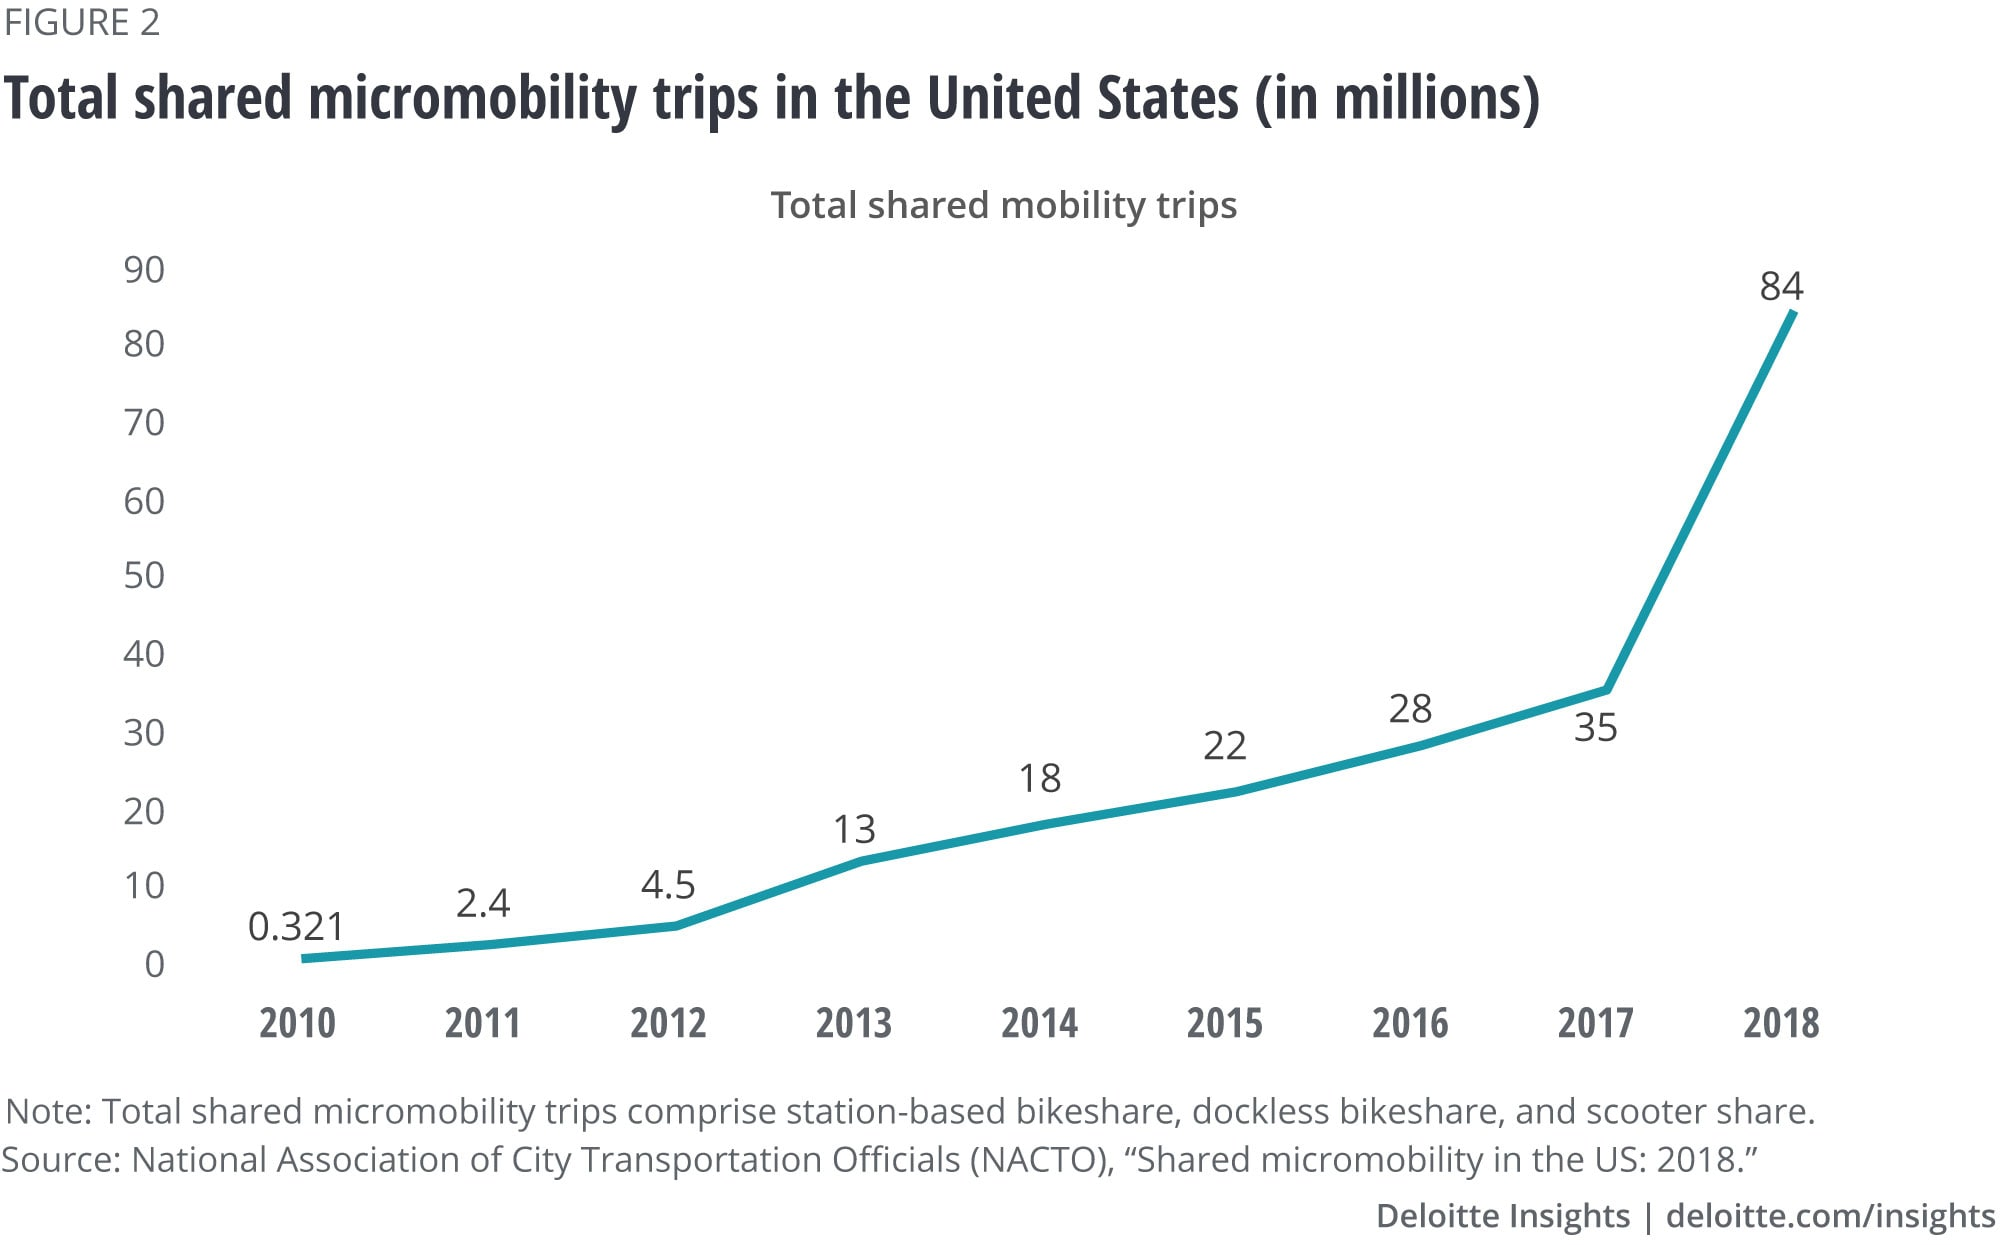 Total shared micromobility trips in the United States (in millions)